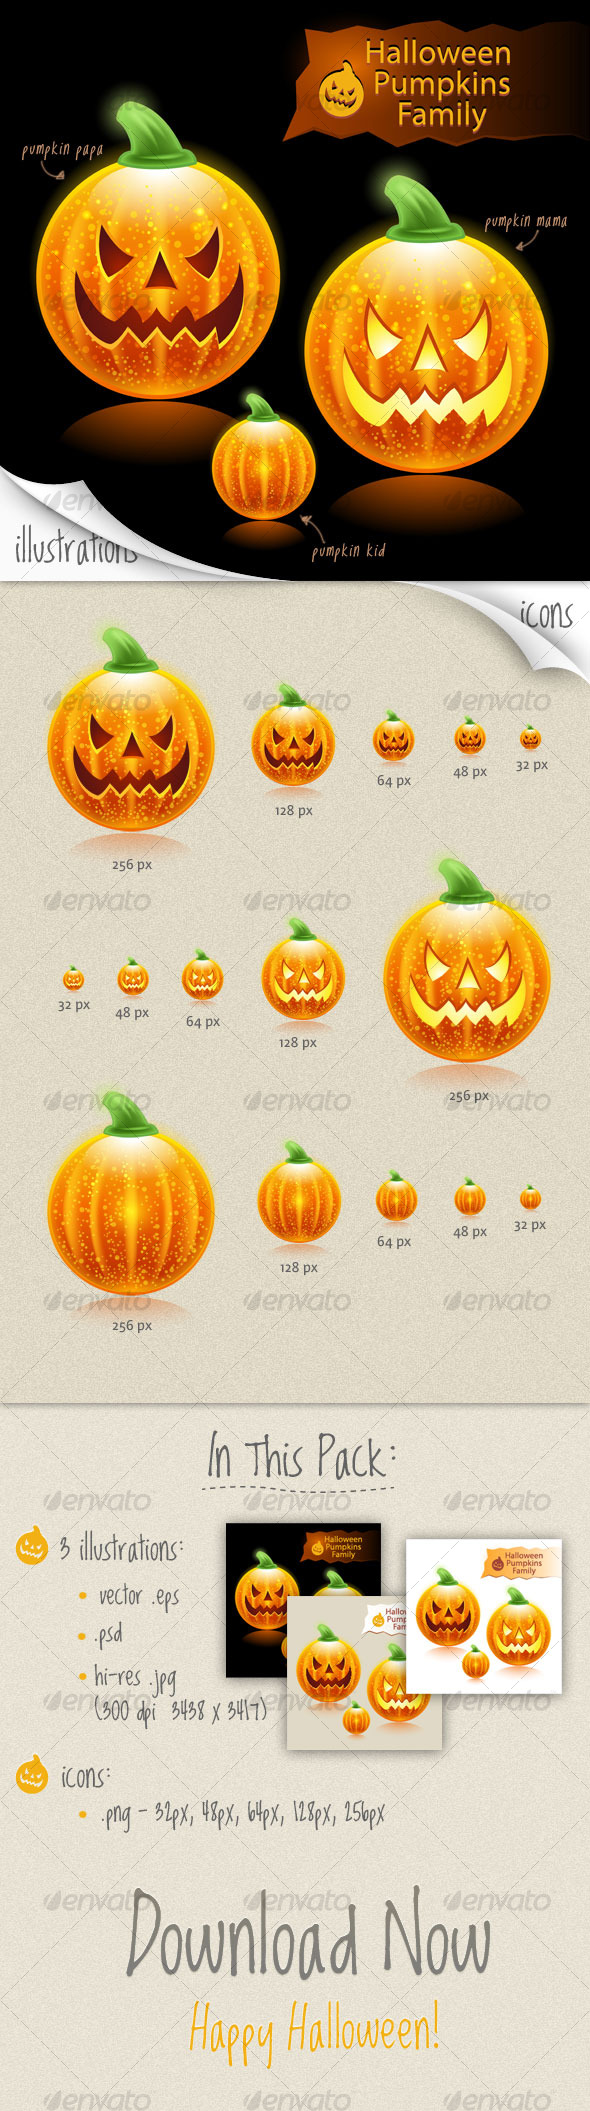 Halloween pumpkins family icons